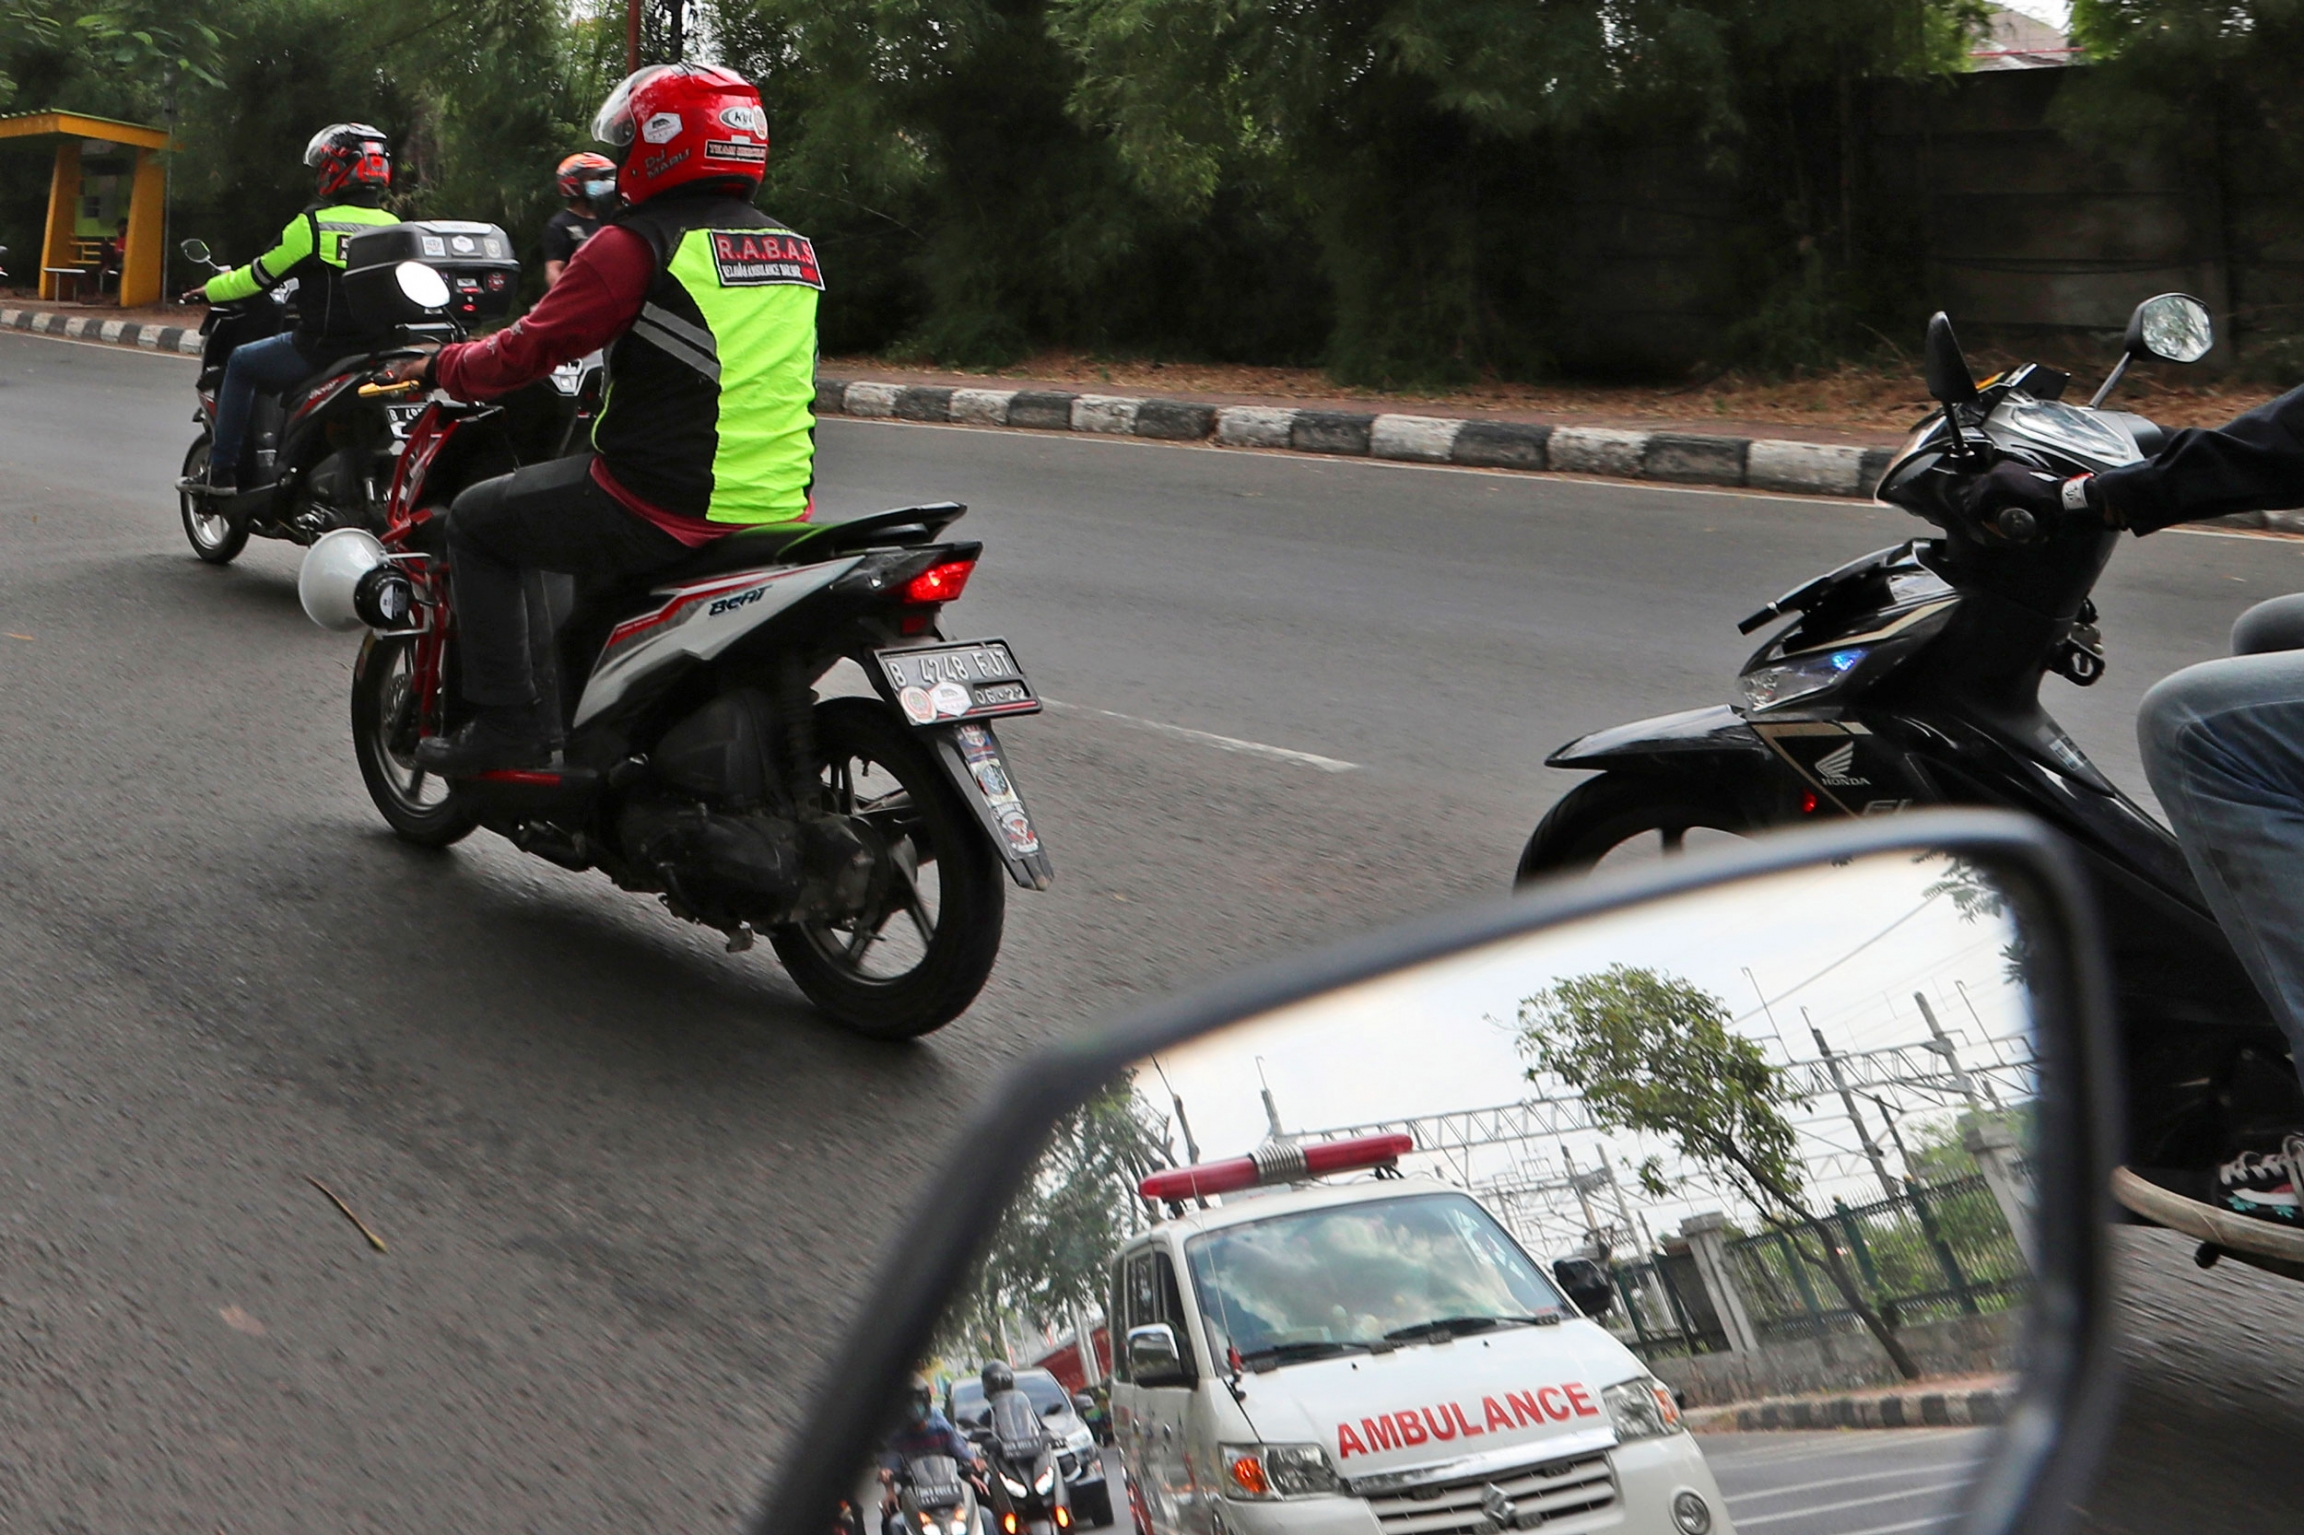 An ambulance is shown in the reflection  of a motorbike's side view mirror.